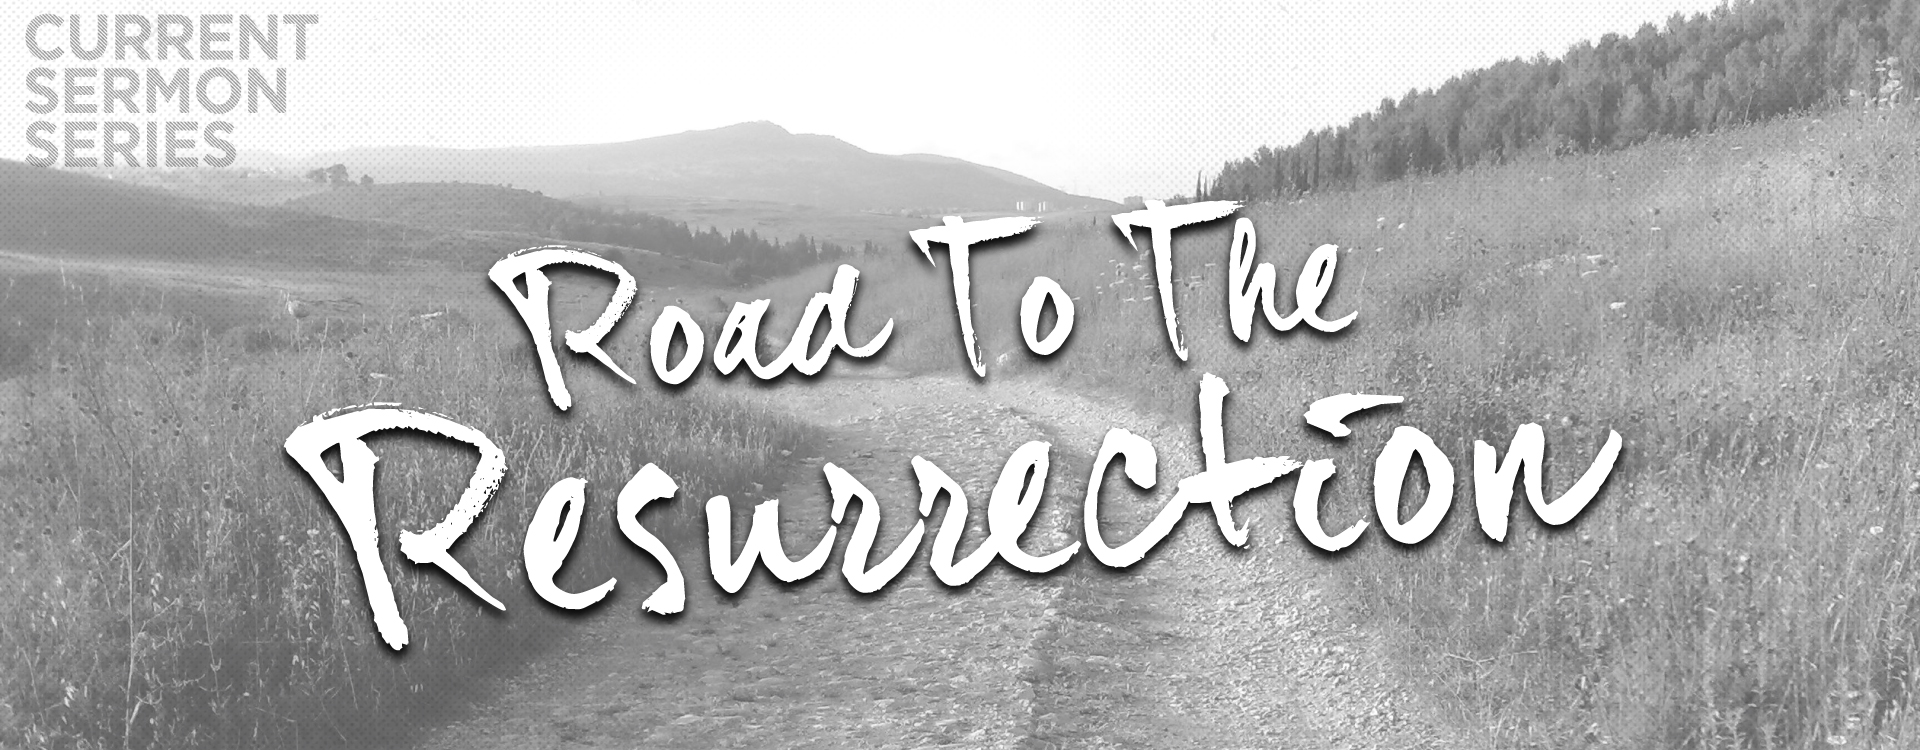 Road to the Resurrection – Seven Hills Fellowship